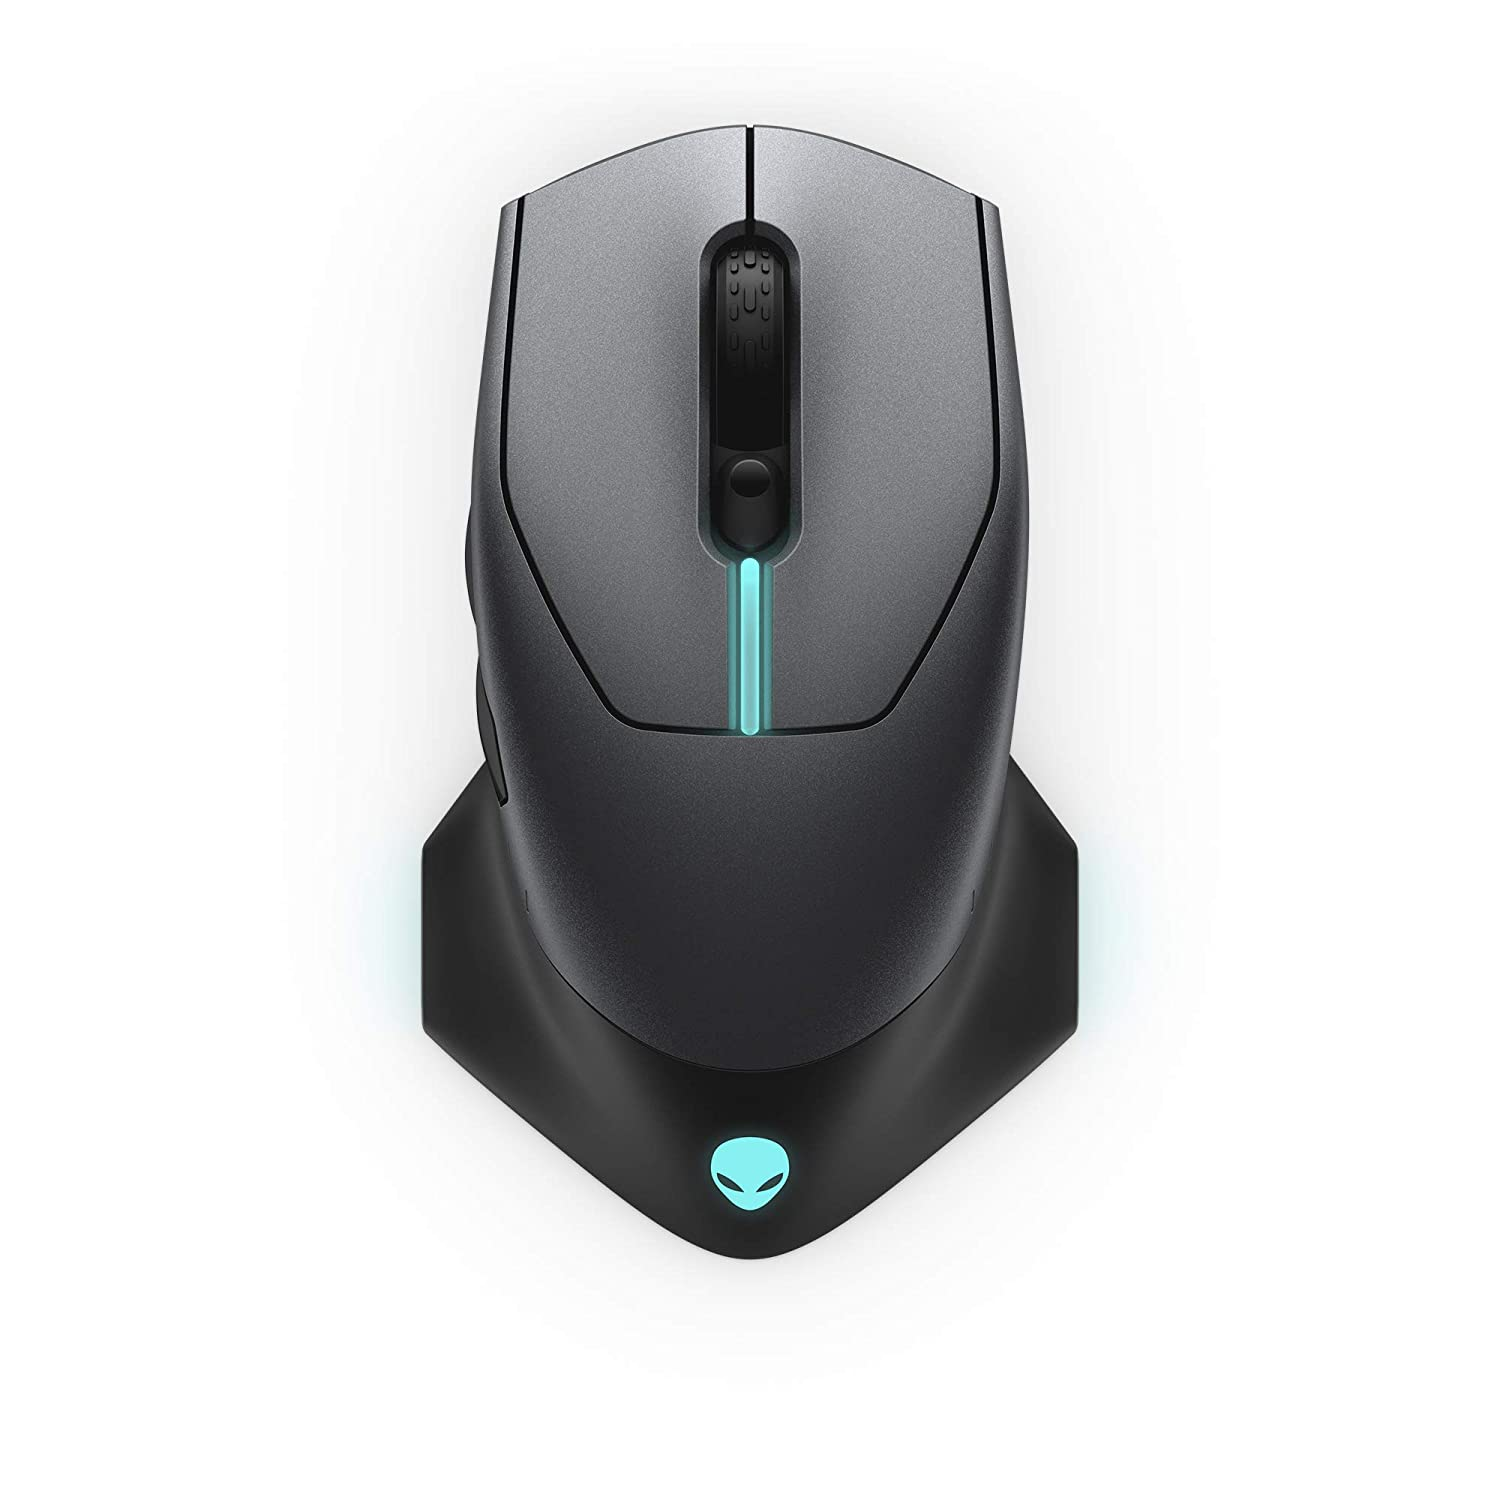 Alienware Wired Wireless Gaming Mouse AW610M 16000 DPI Optical Sensor – 350 Hour Rechargeable Battery Life – 7 Buttons – 3-Zone Alienfx RGB Lighting